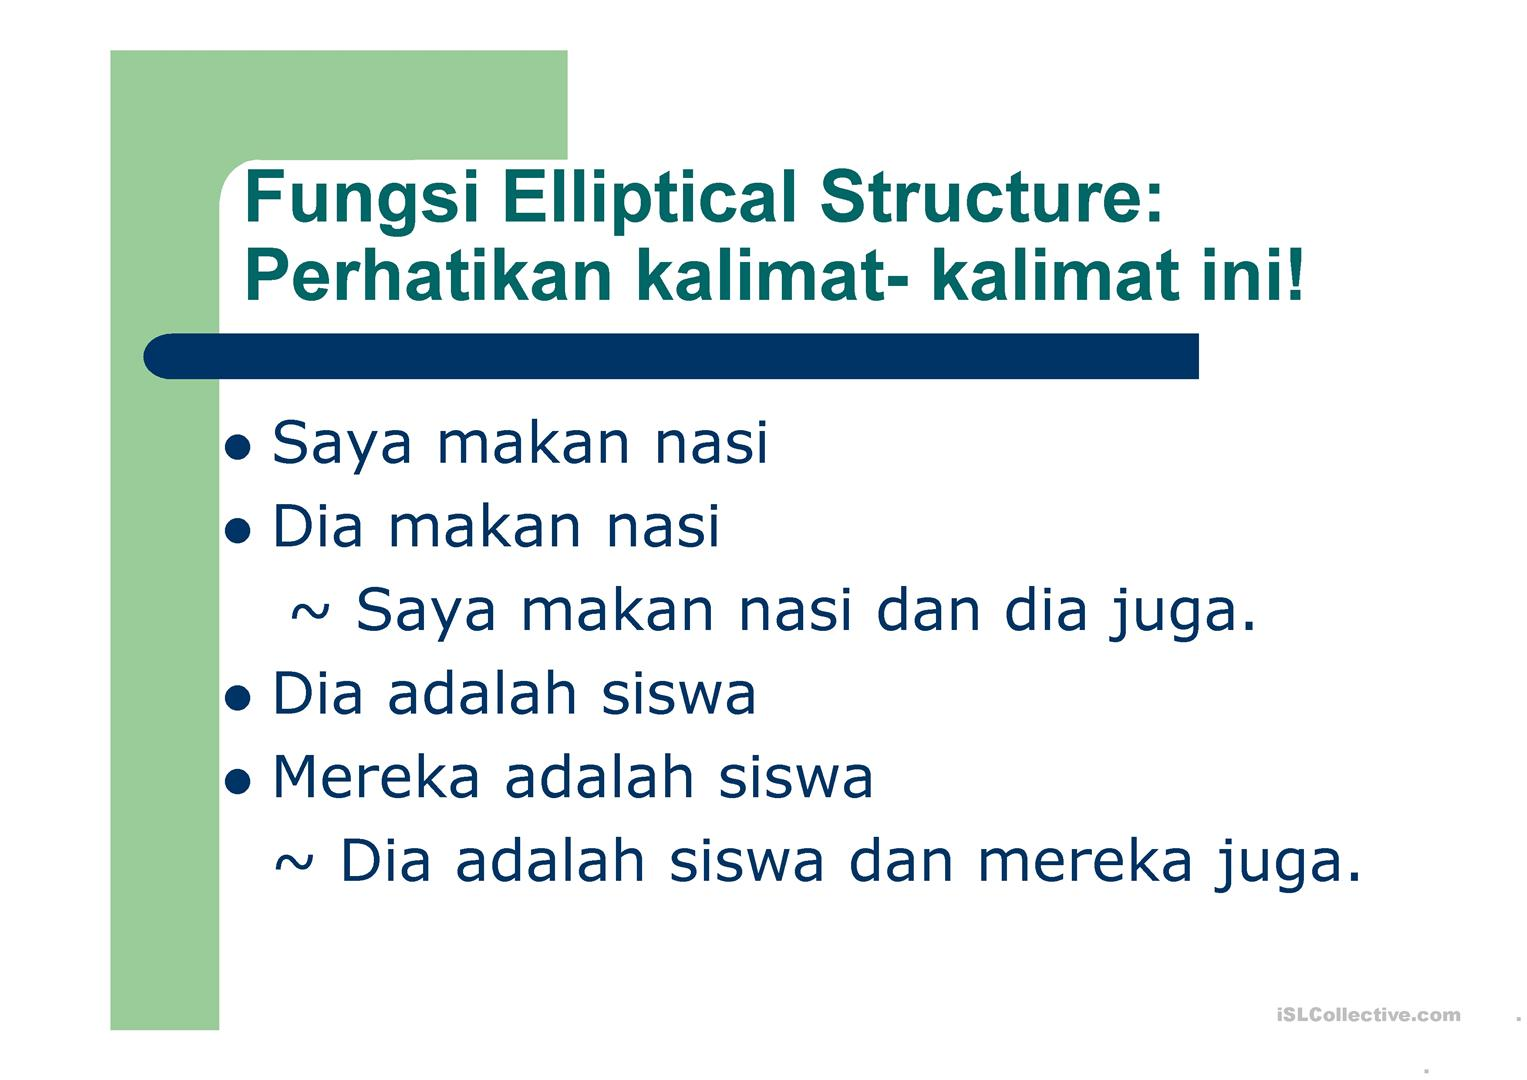 Elliptical Structure Explanation In Bahasa Indonesia